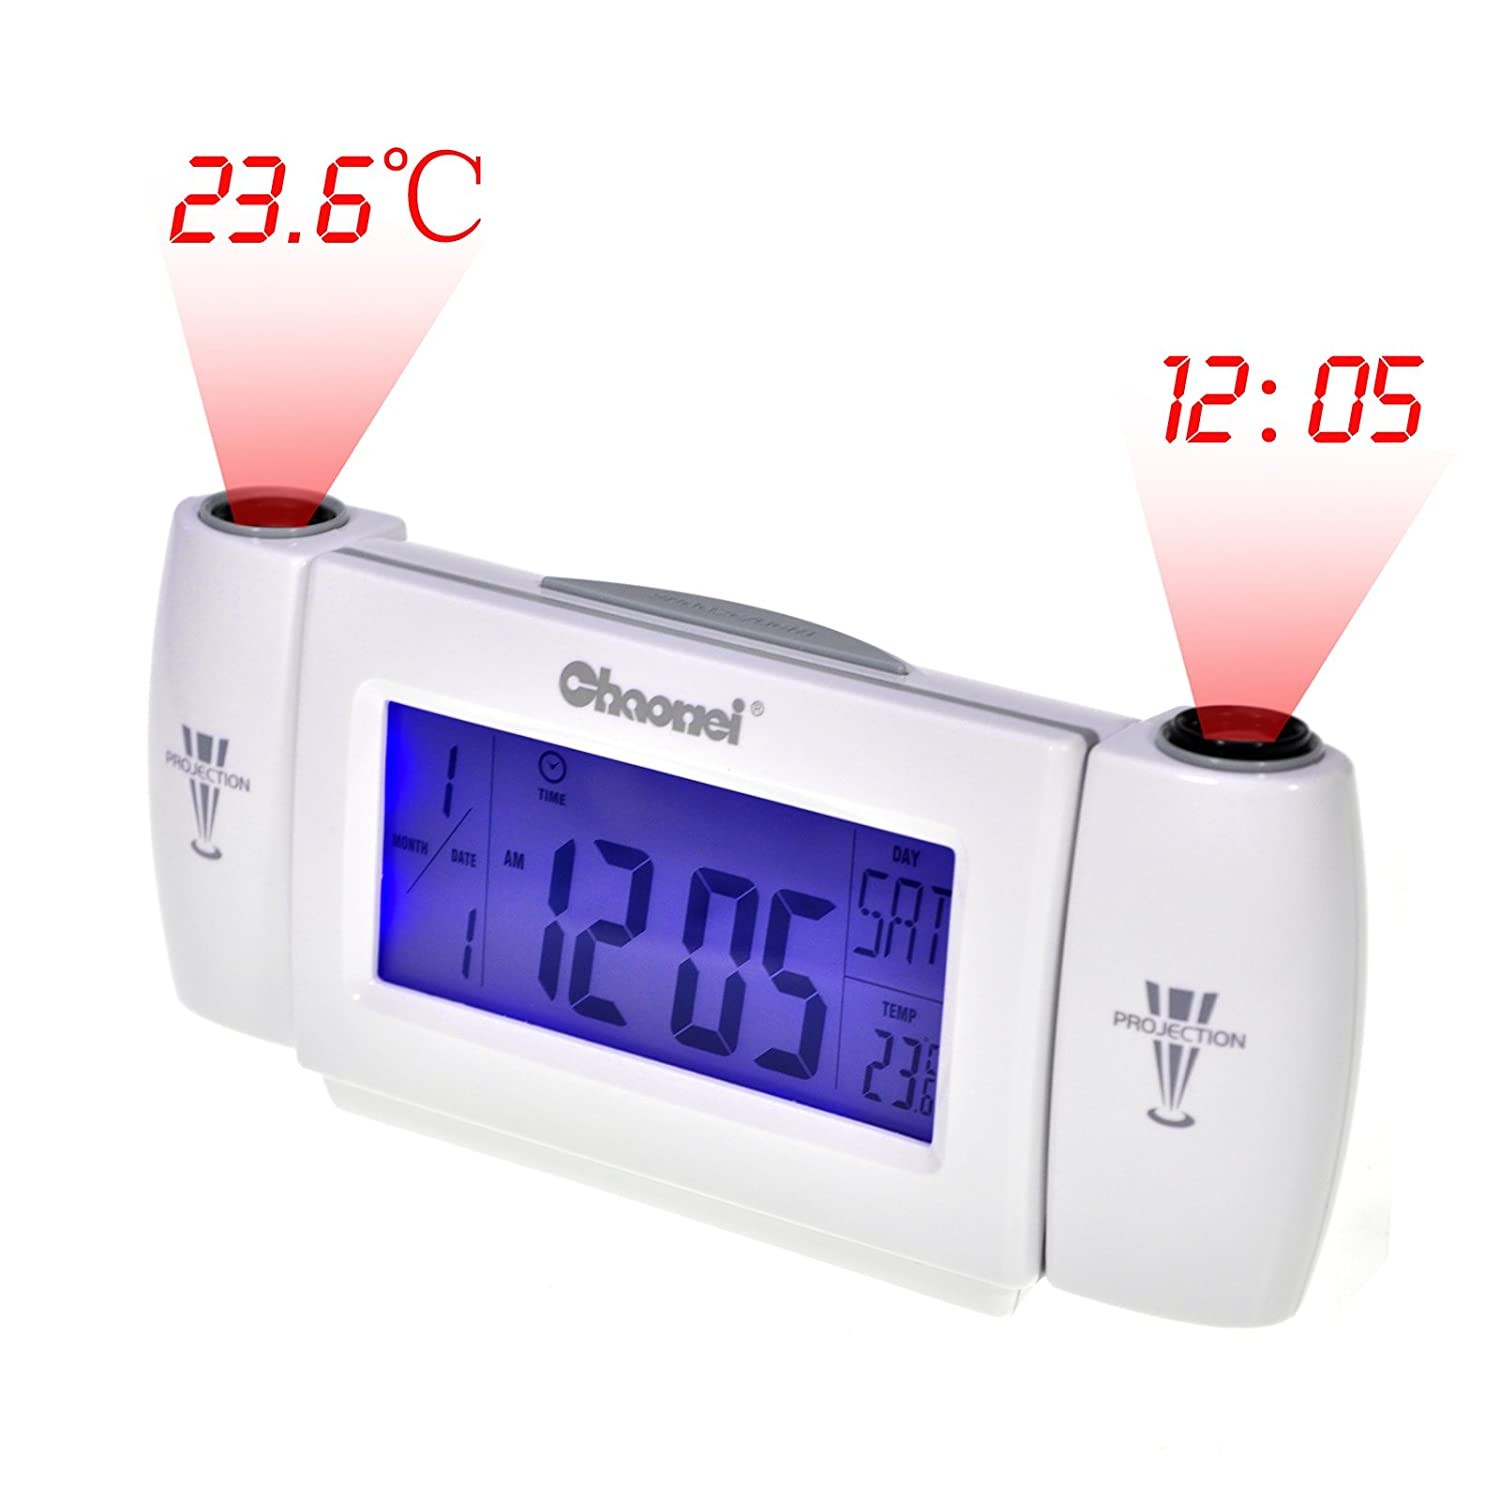 Amazon.com: Generic Dual Projection Alarm Clock Clapping Voice Controlled Despertador Reloj Despertador CA1T: Home & Kitchen